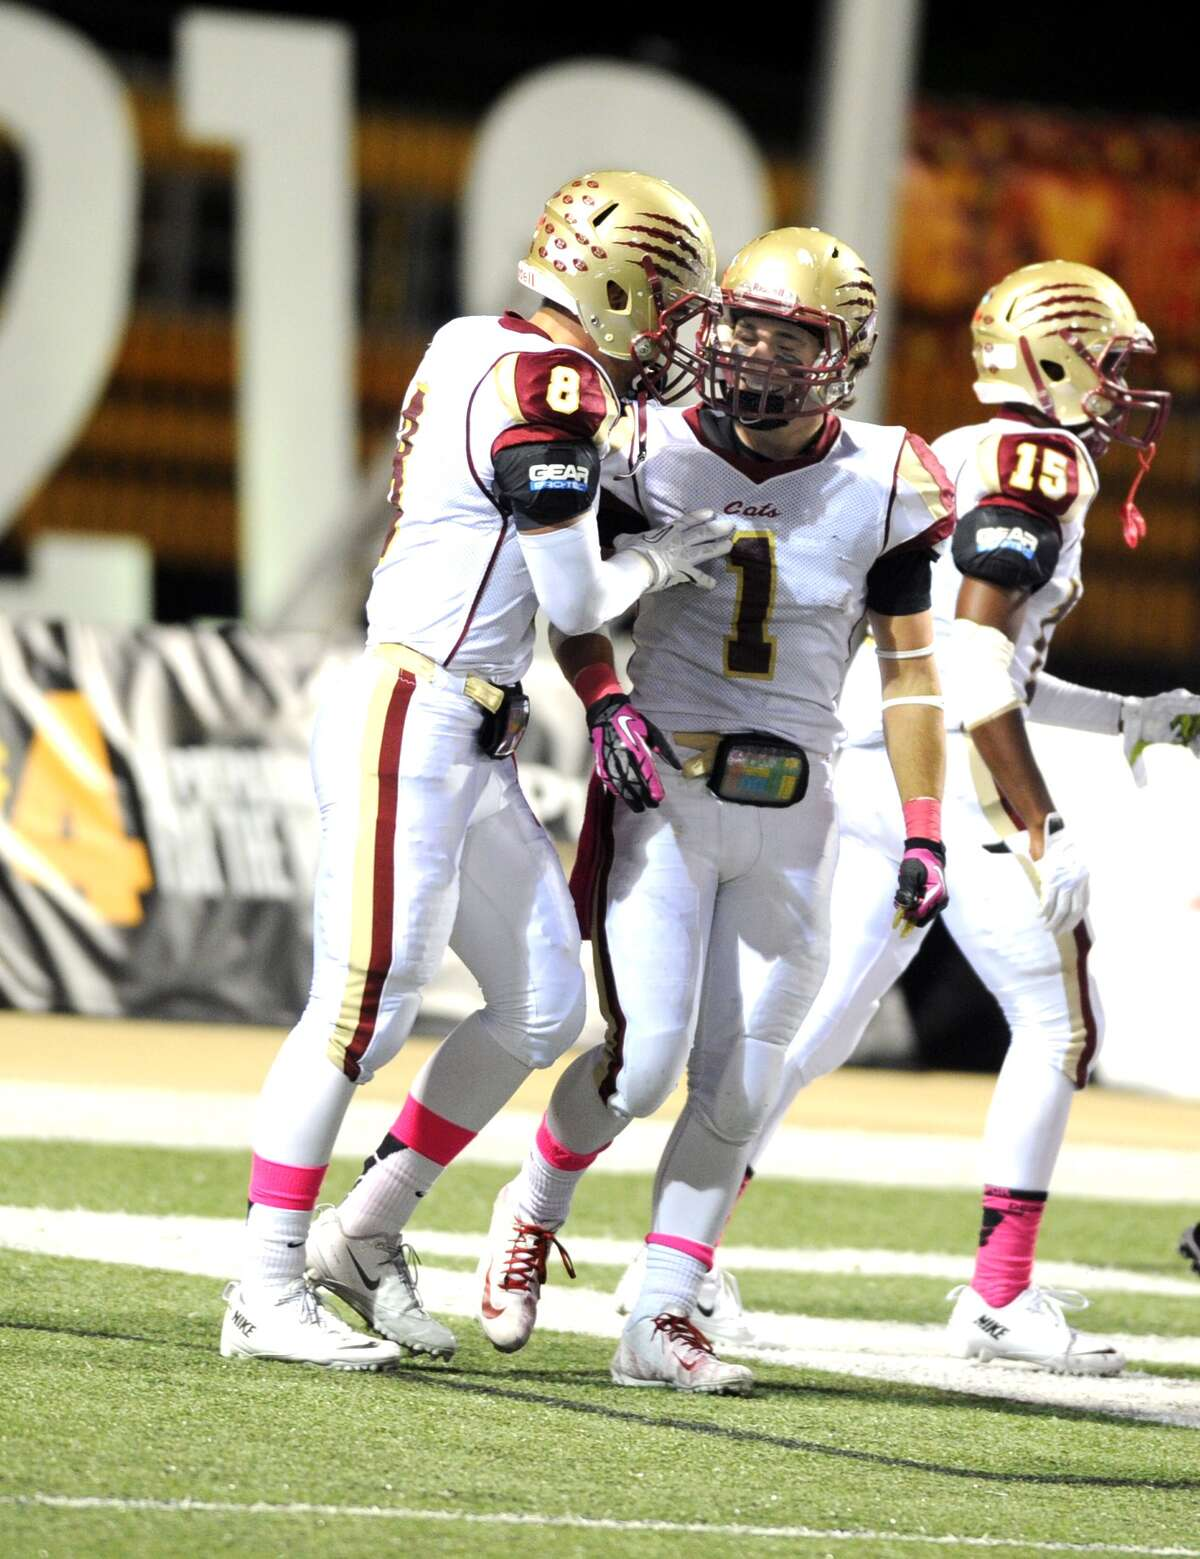 Cy Woods and Cy Ranch played a football game at The Berry Center, 10-19-13. Cy Woods won the game, 54-0. Left, Chris England (8) congratulates receiver Mason Roberts (1) after Roberts scored a touchdown.